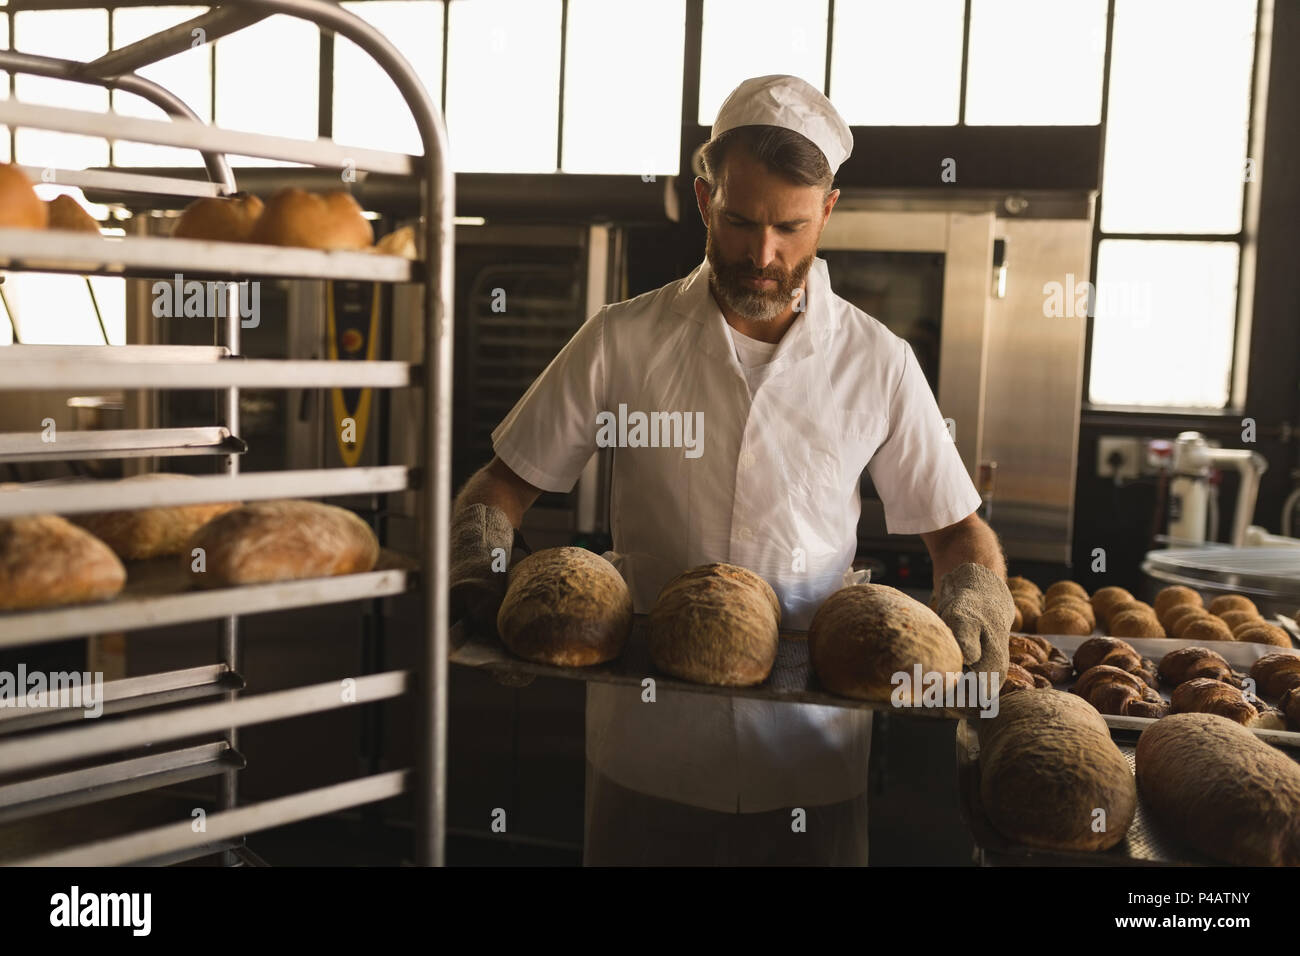 Male baker holding a tray of baked breads - Stock Image